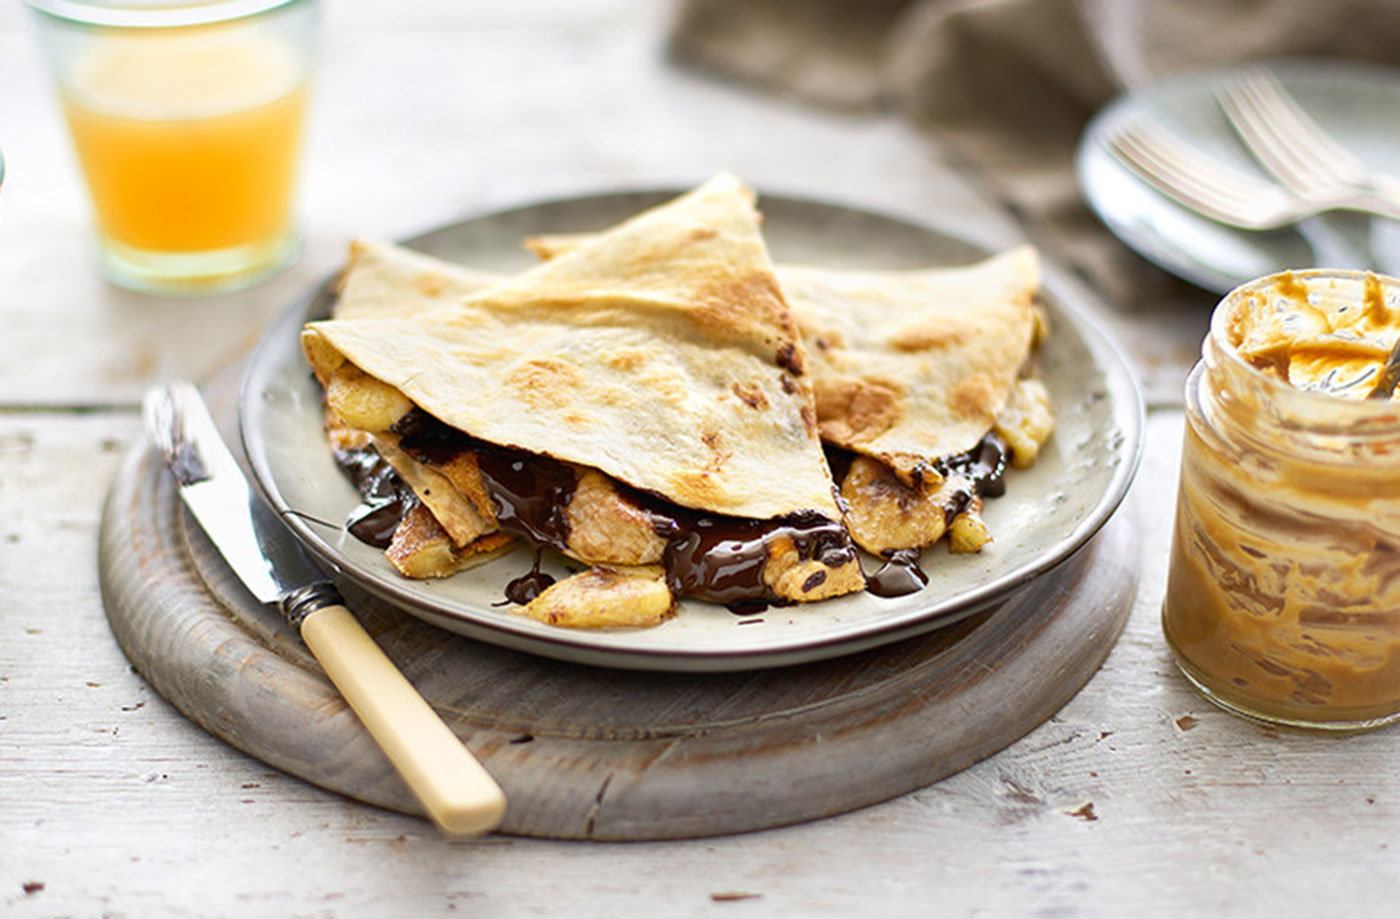 Cinnamon-spiced peanut butter and banana quesadilla | Tesco Real Food